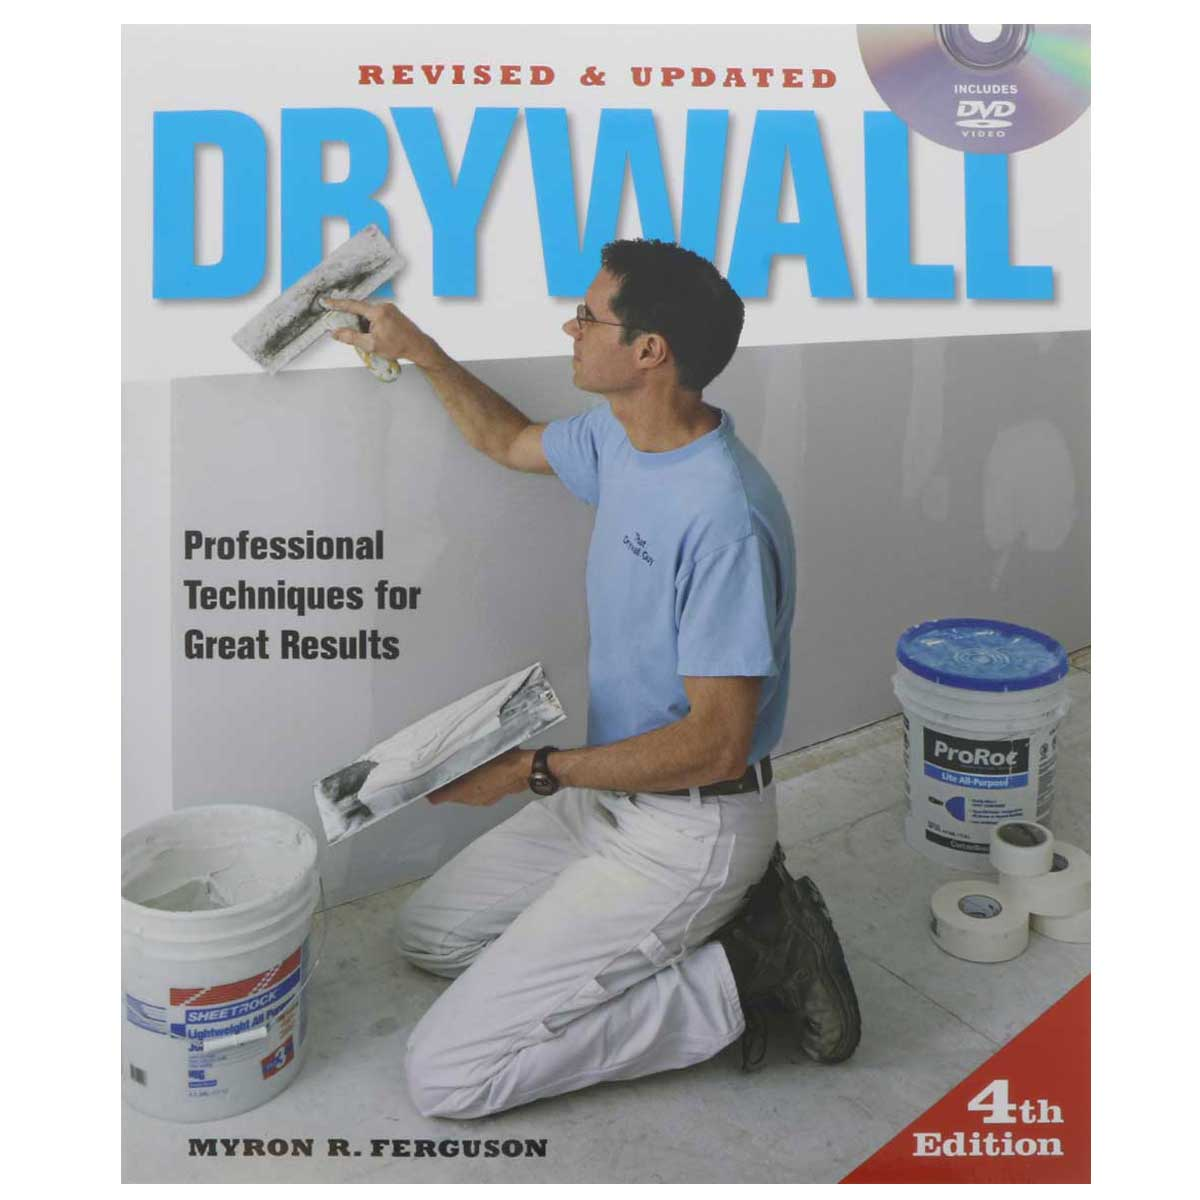 Drywall Professional Techniques for Great Results - 4th Edition